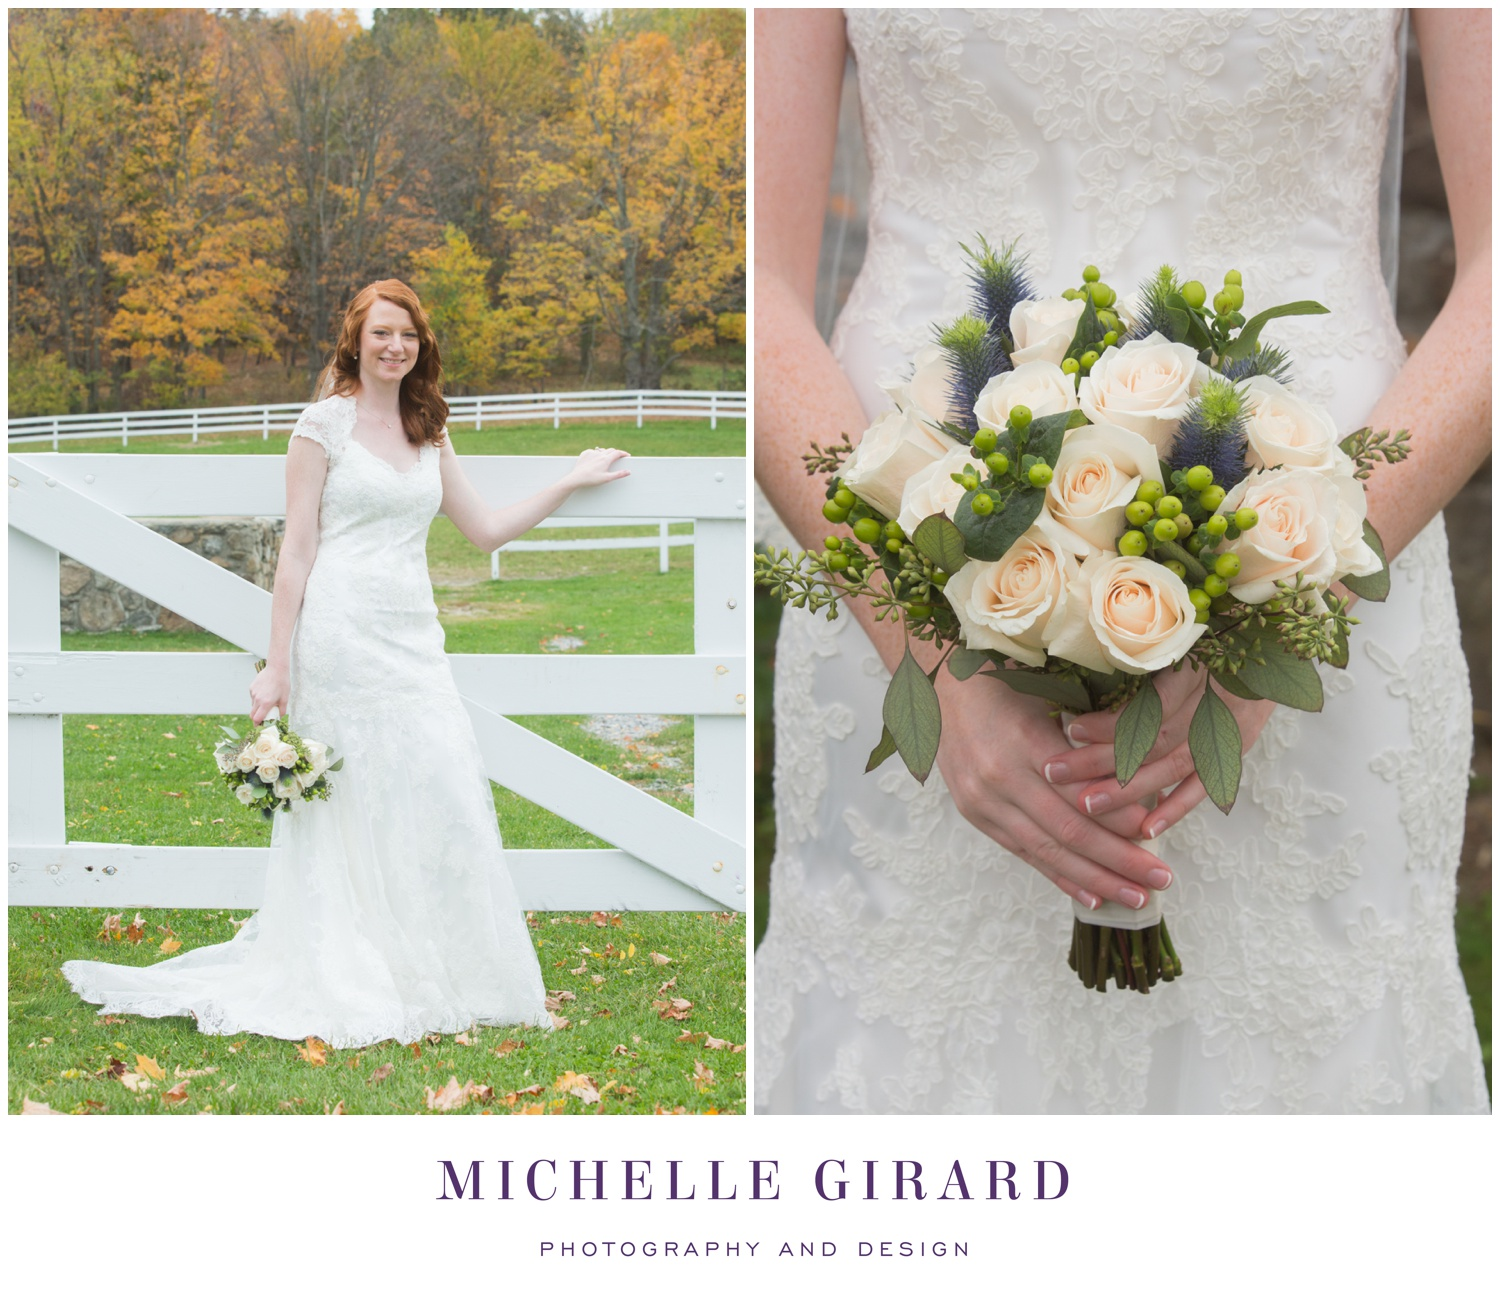 CandleLightFarms_FallRusticWedding_MichelleGirardPhotography11.jpg